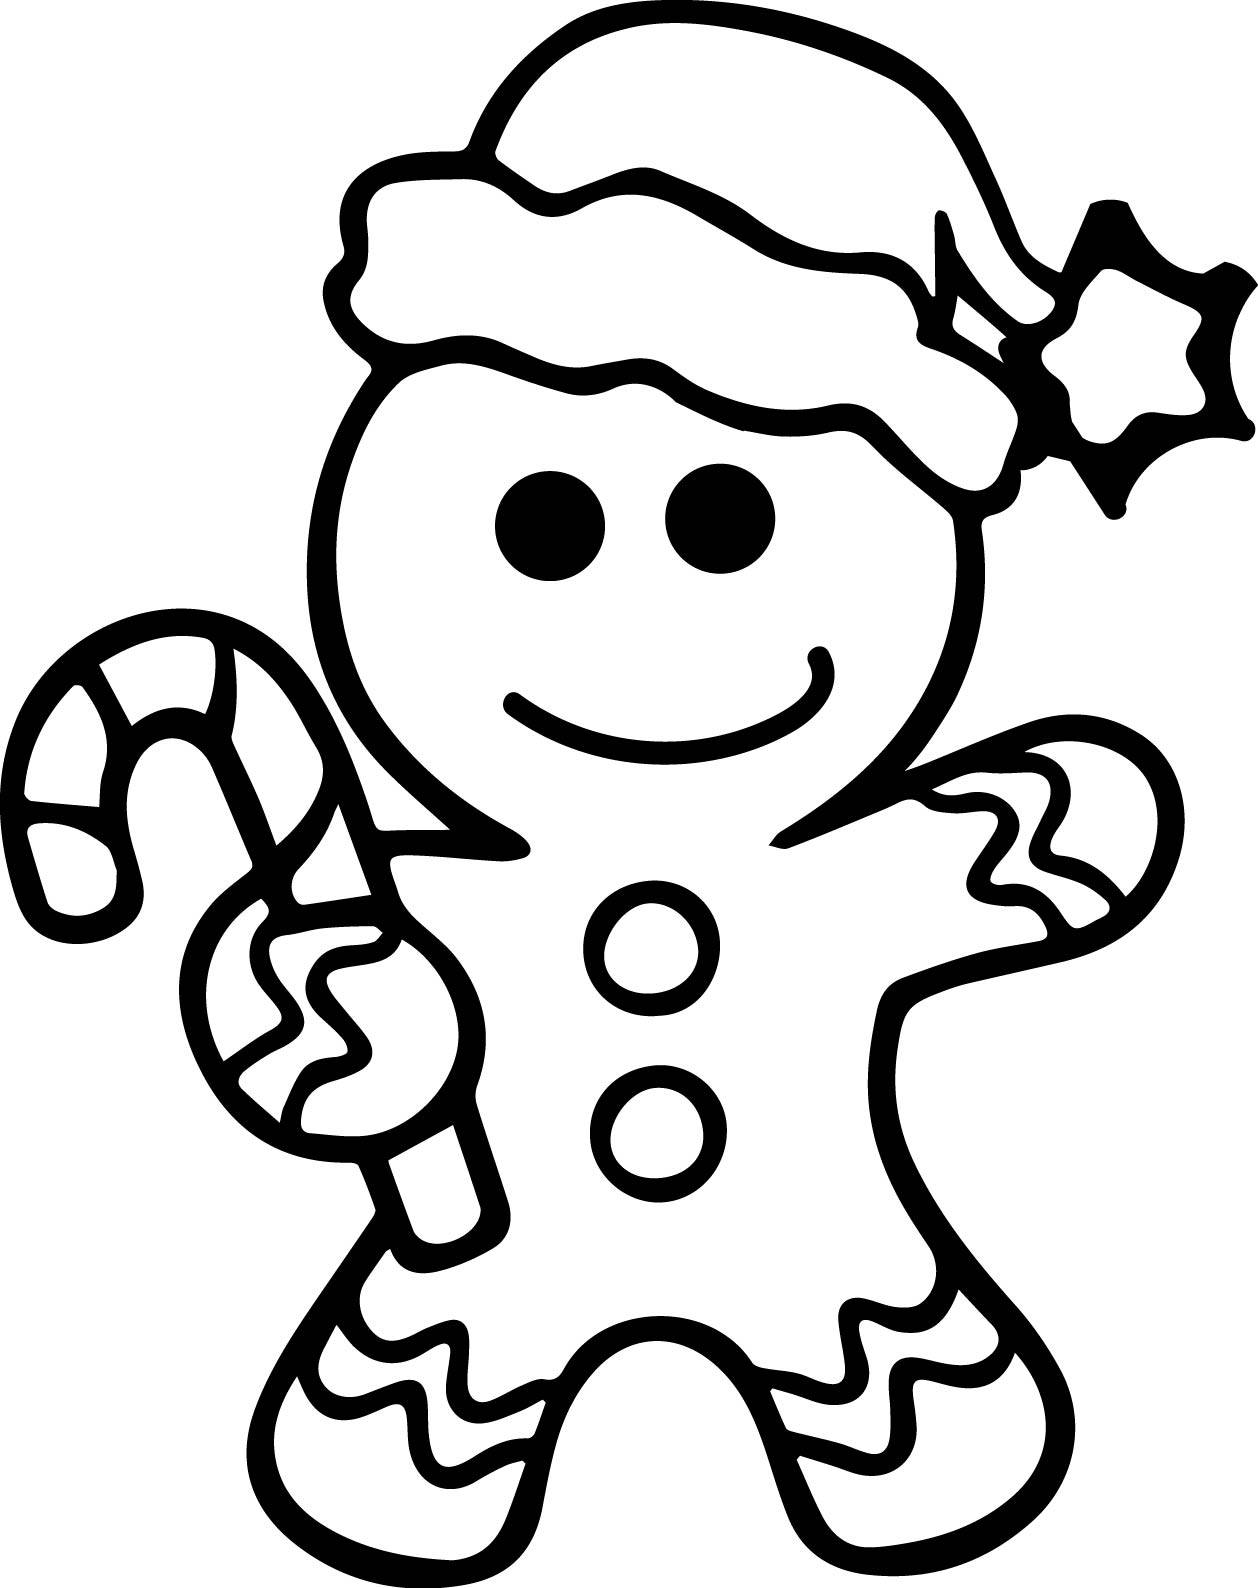 Christmas Coloring Pages Gingerbread House At Getcolorings